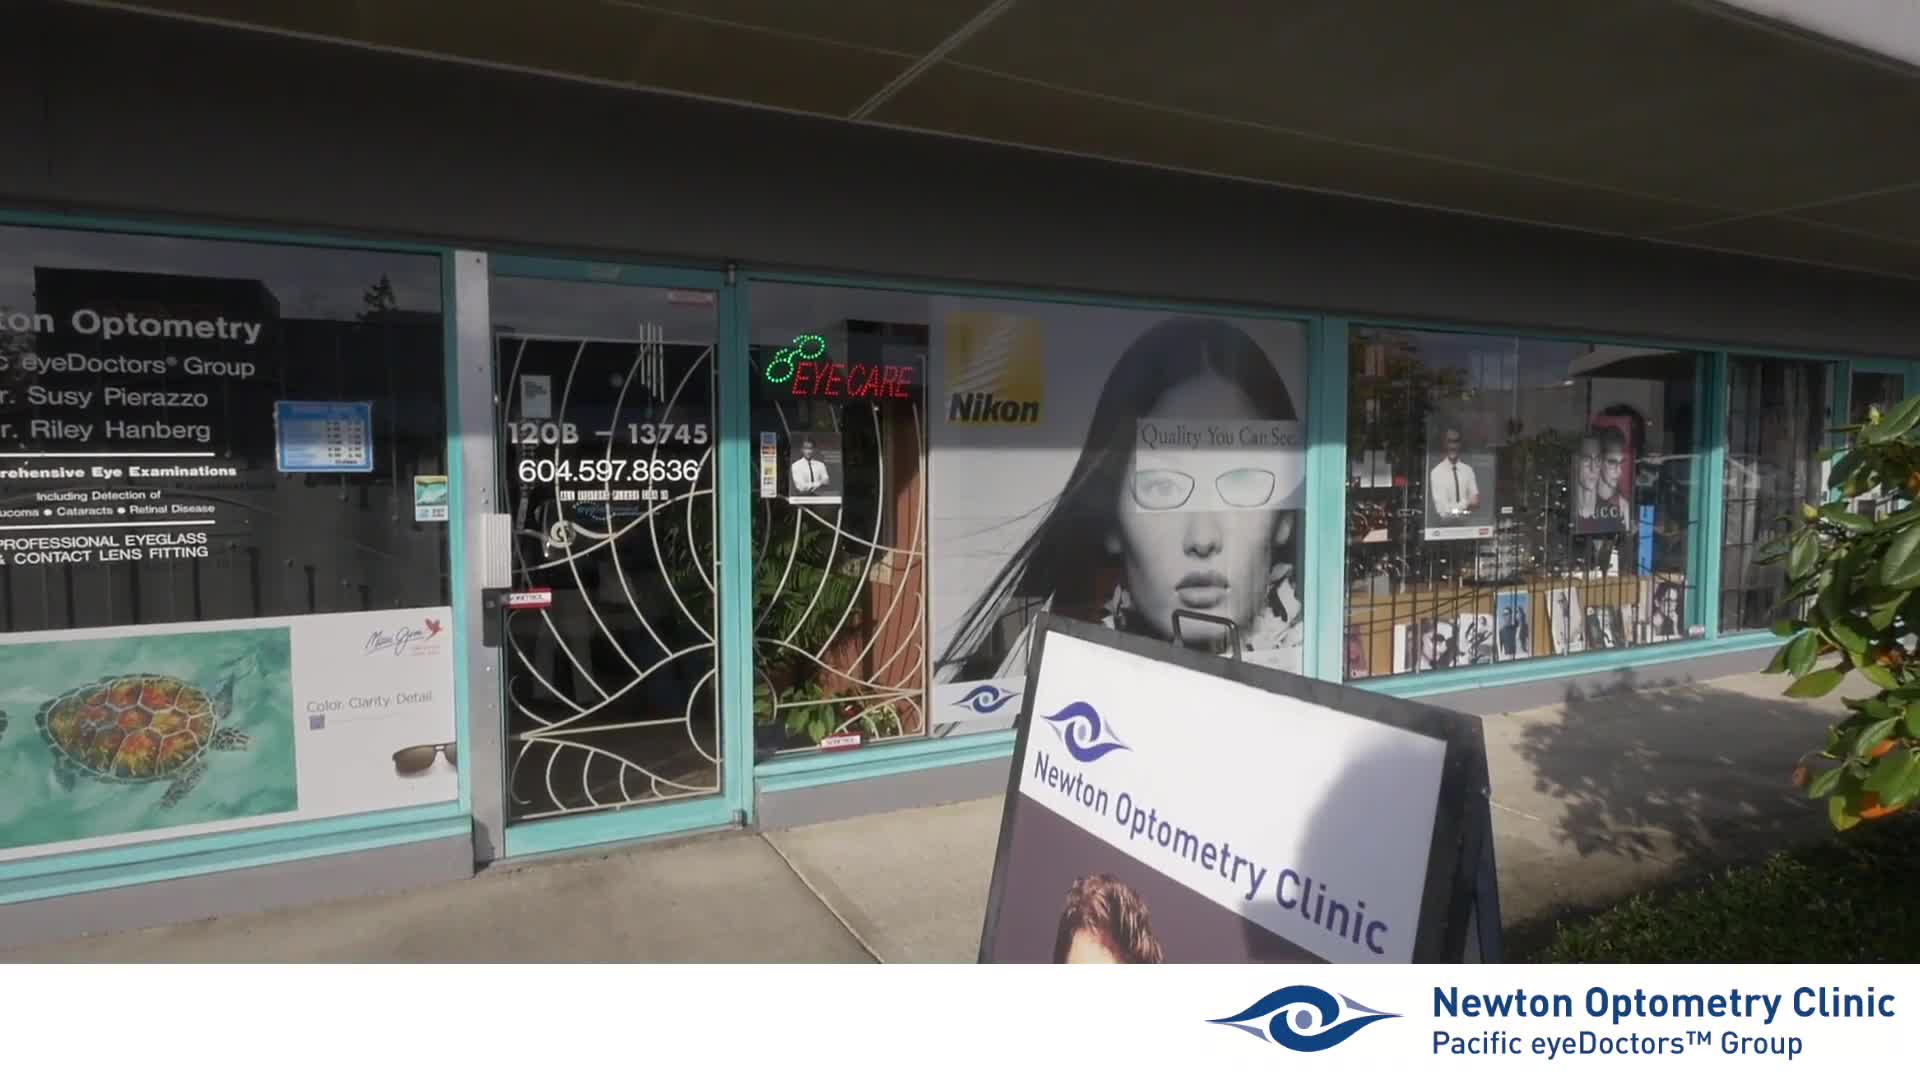 Newton Optometry Clinic - Optometrists - 604-597-8636